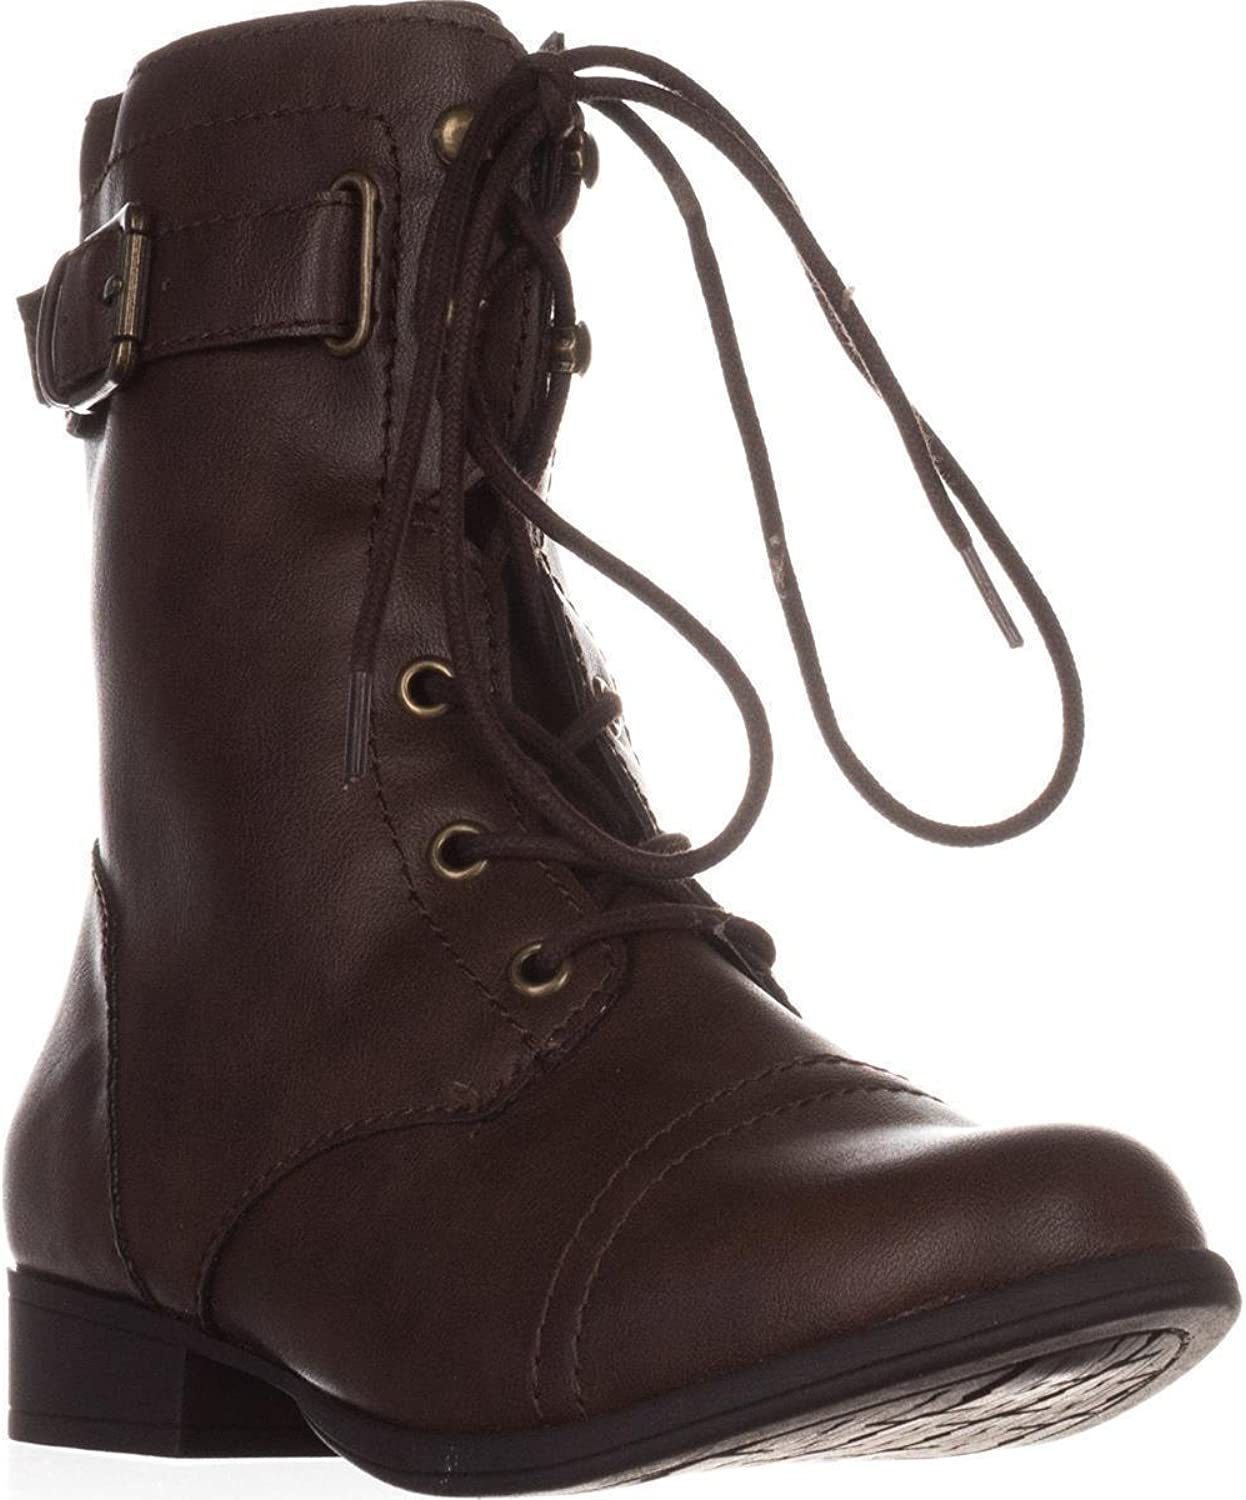 American Rag Fionn Lace-Up Combat Boots